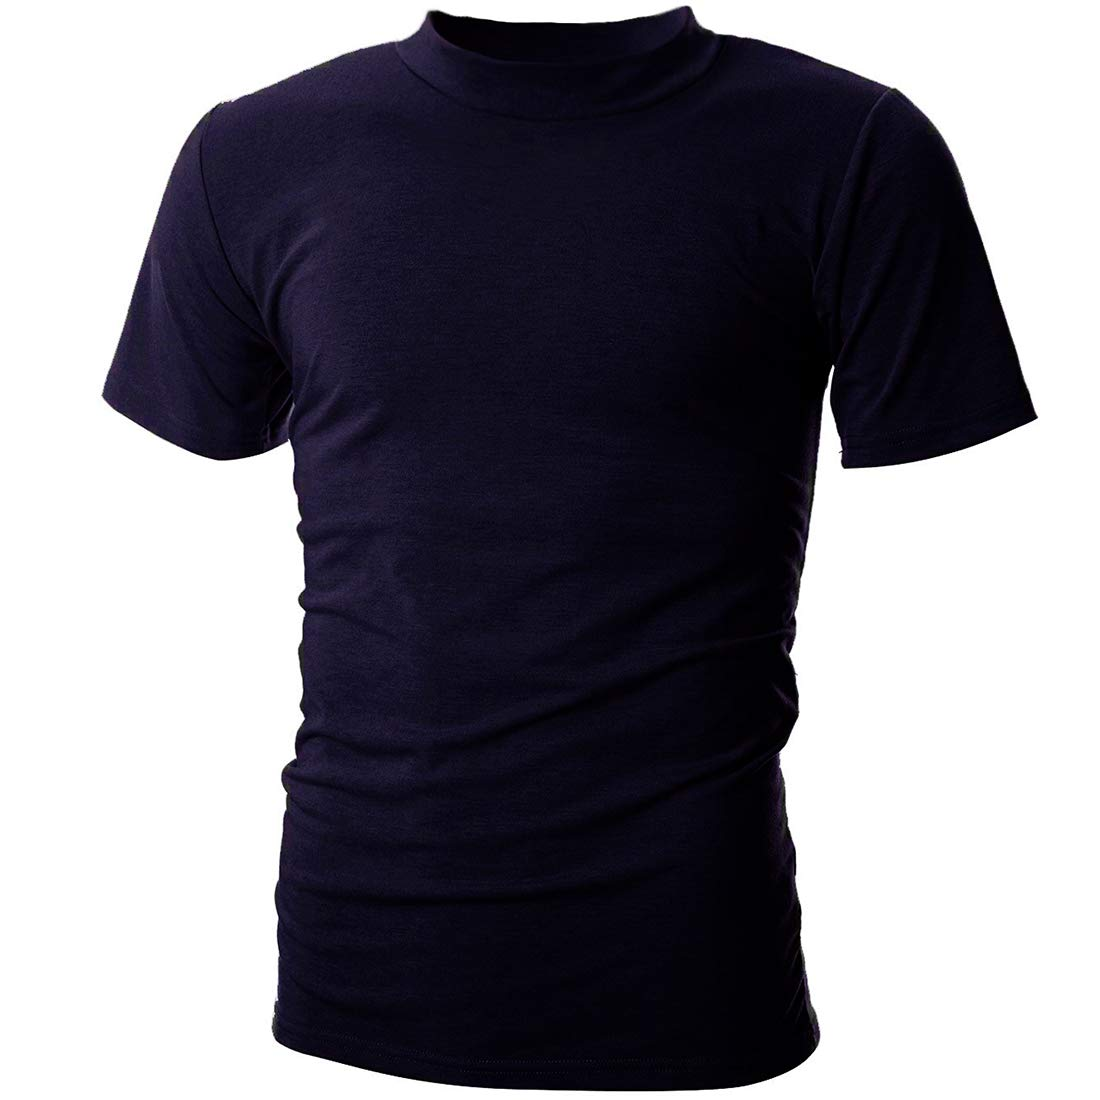 UUANG Men's Solid Basic Jersey High Neck Causal Undershirts Tee (Navy Blue,XL)